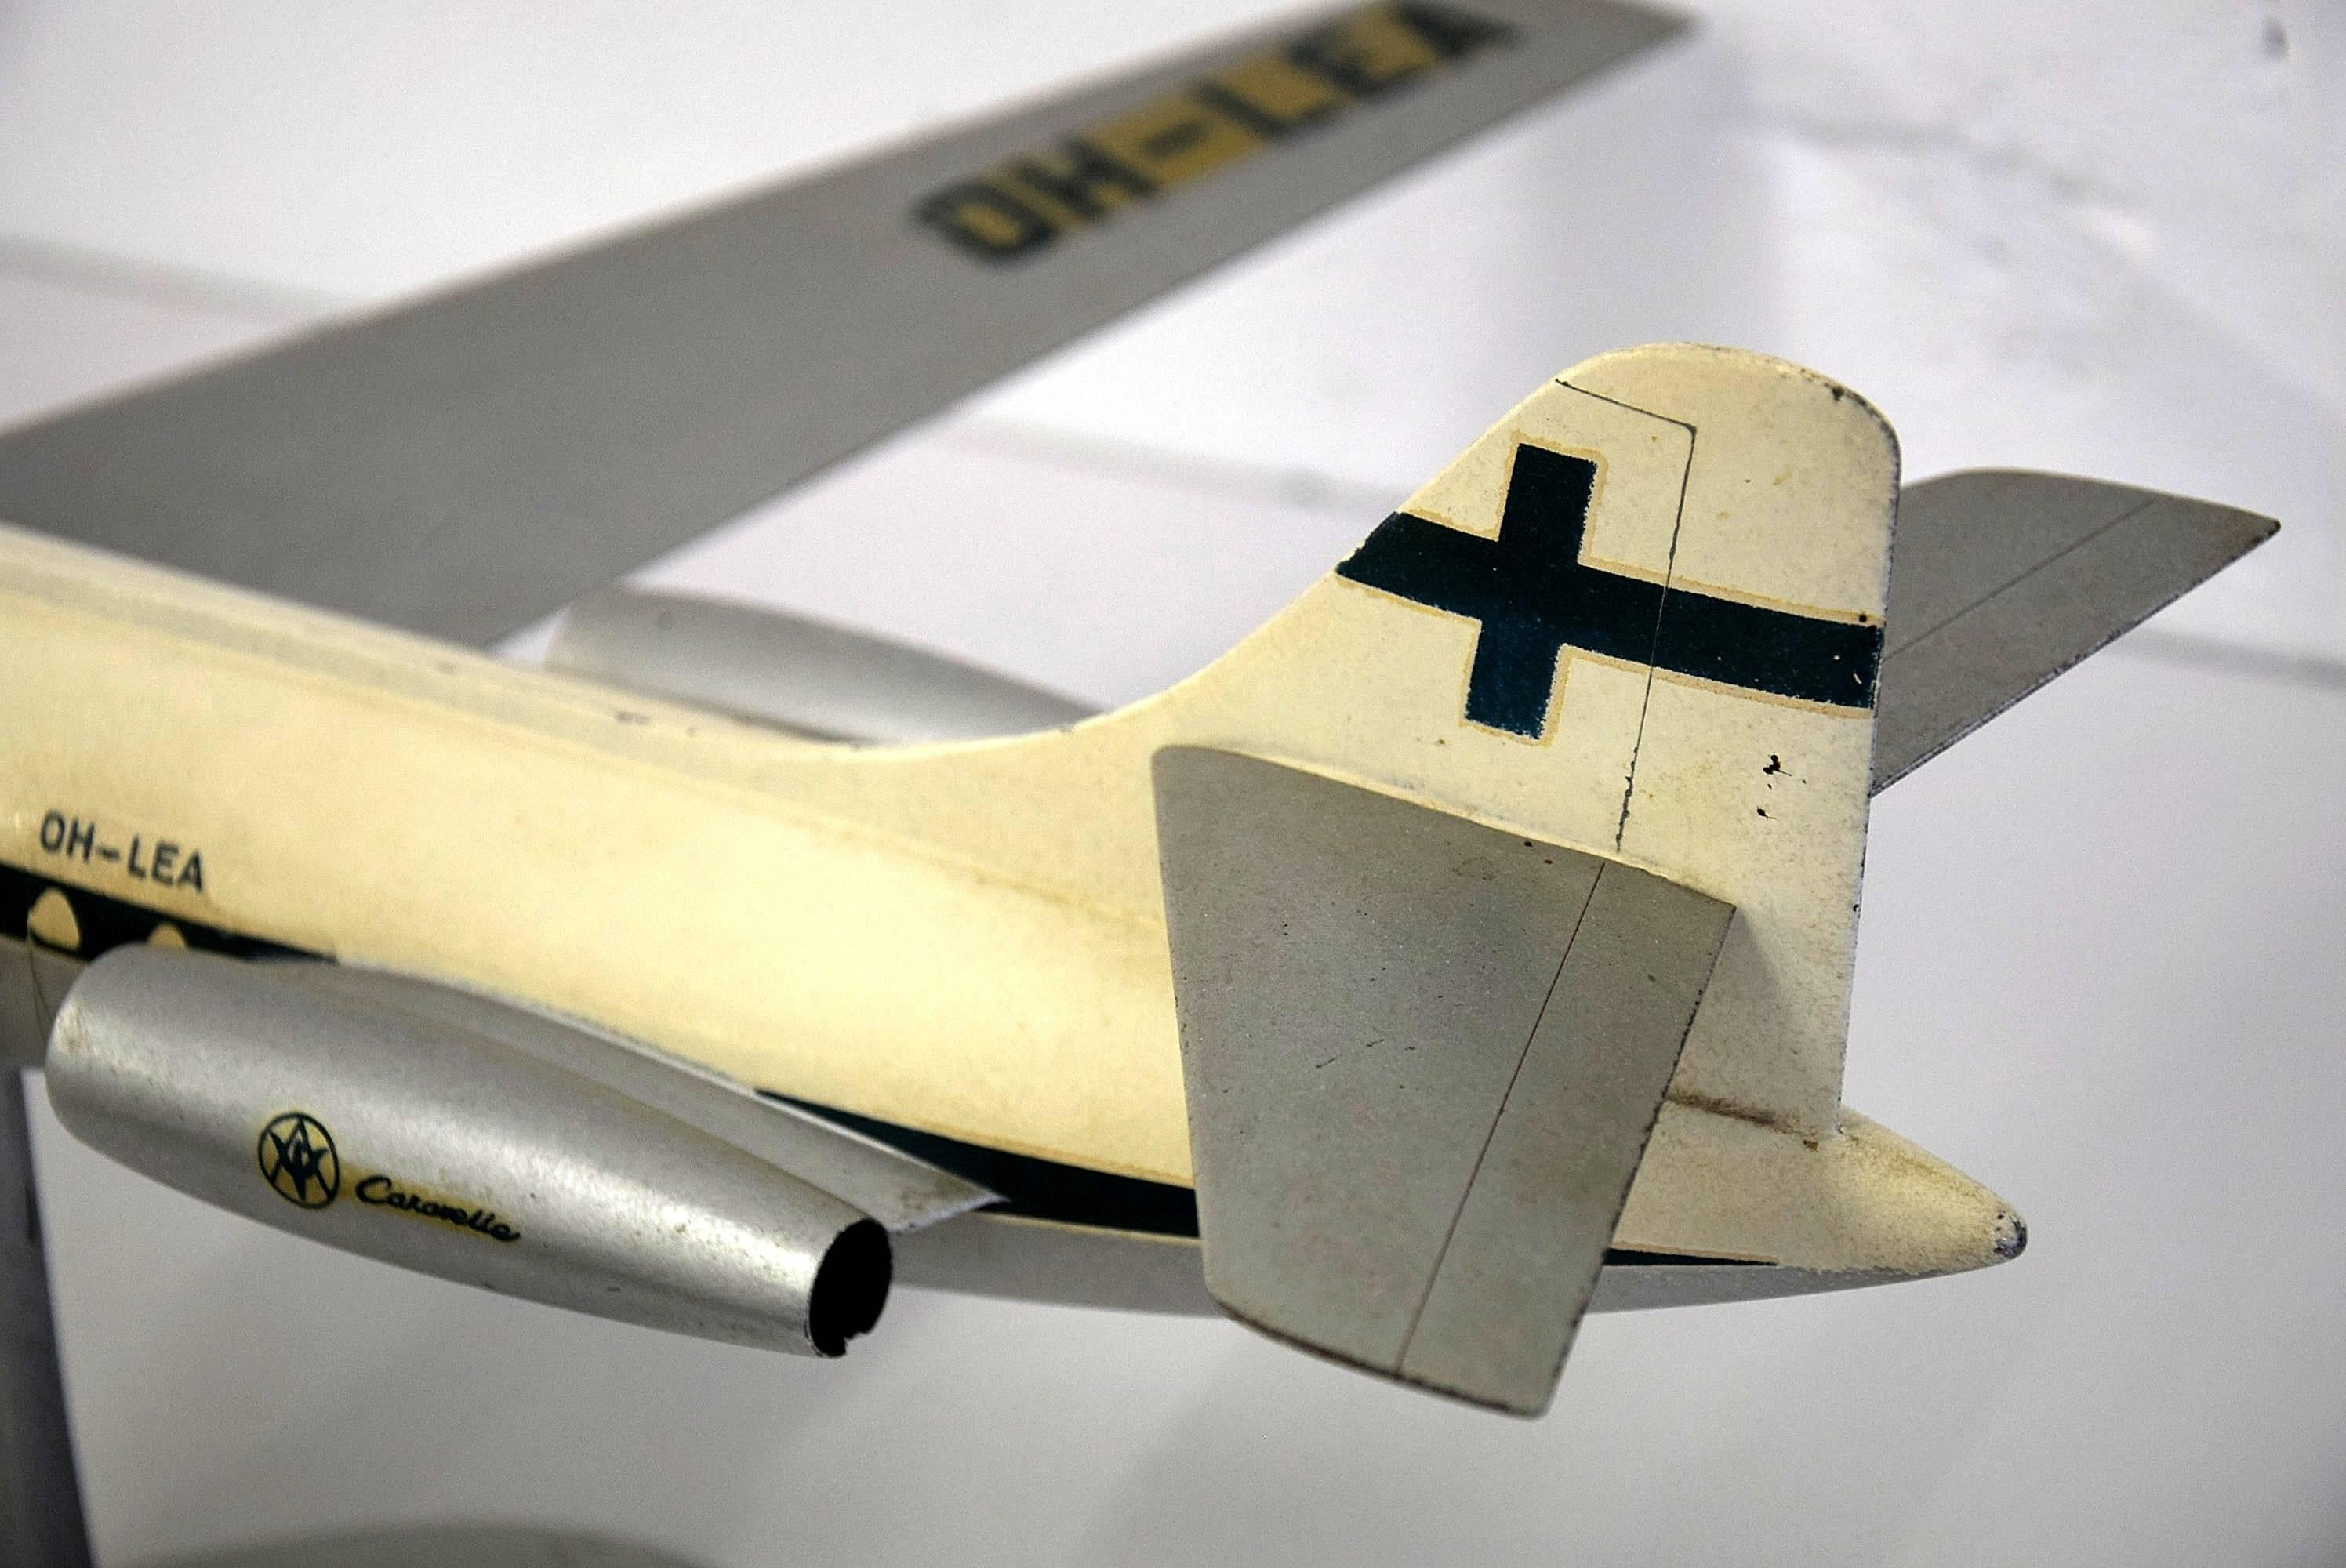 Caravelle Late 1950s Finnair Airplane Model For Sale at 1stdibs